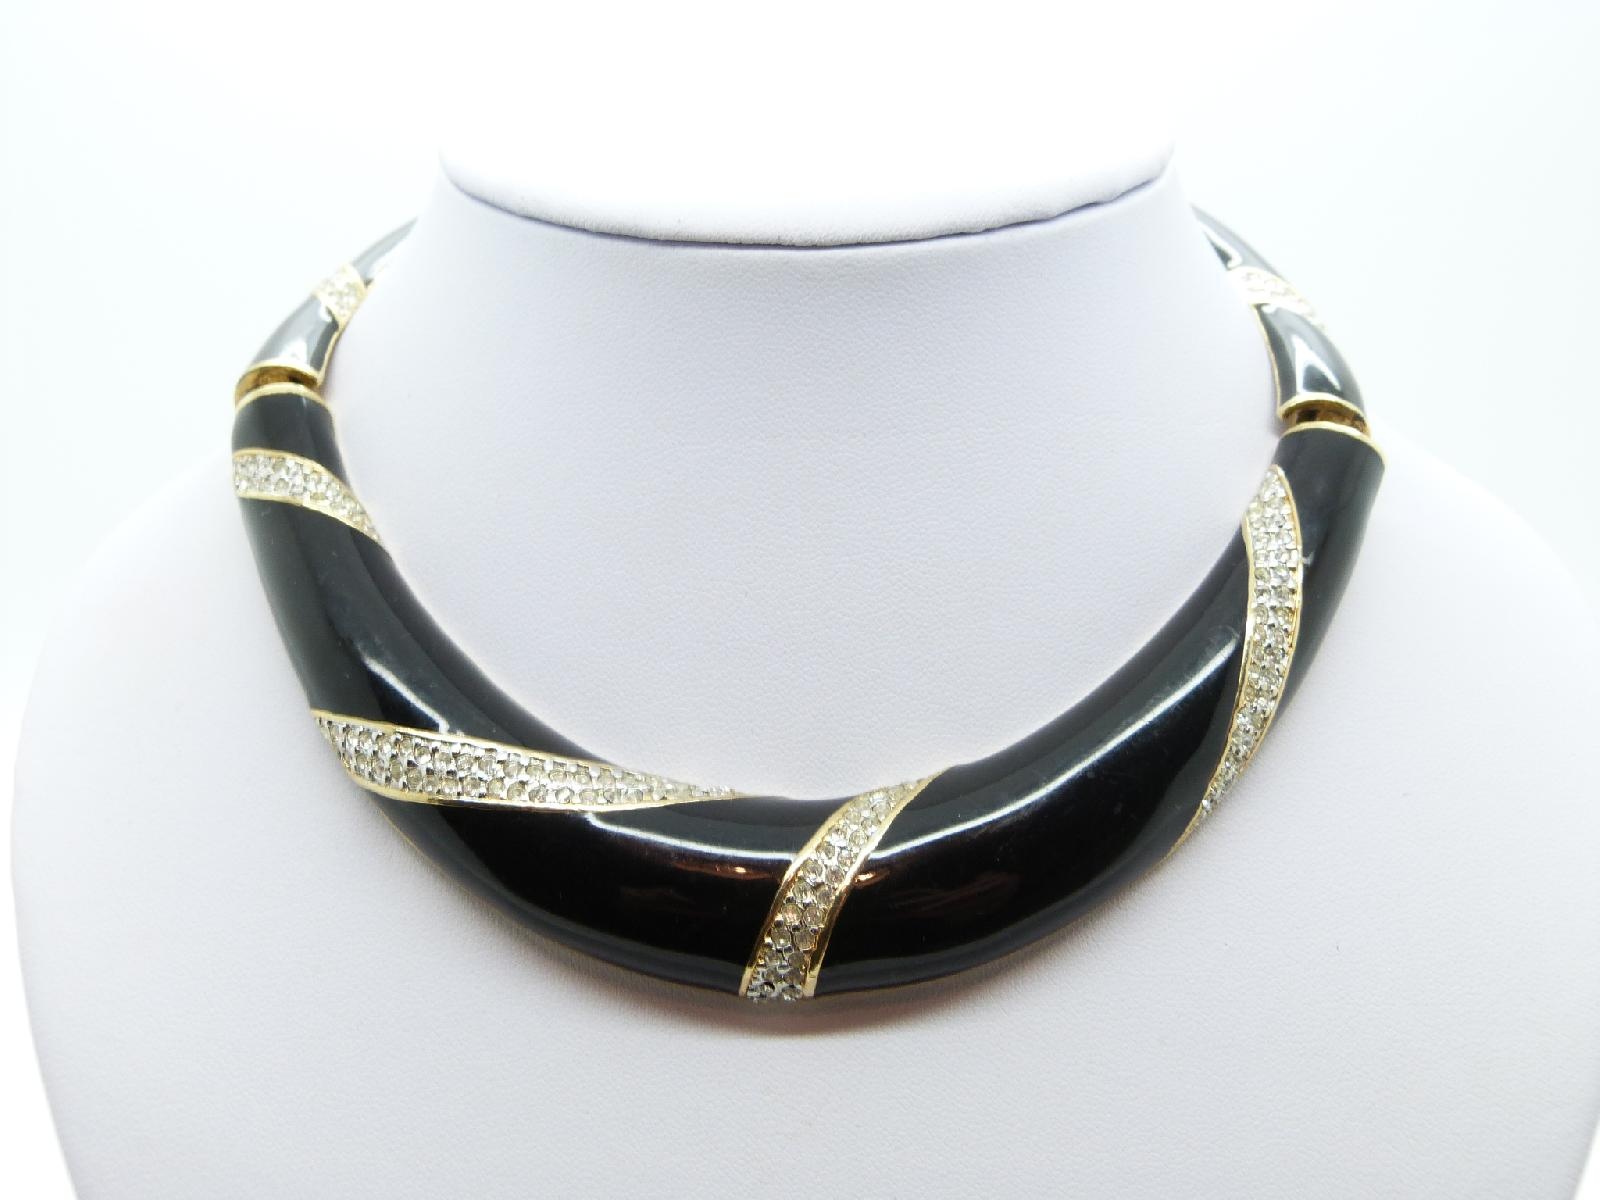 Vintage 80s Black Enamel and Diamante Goldtone Collar Statement Necklace